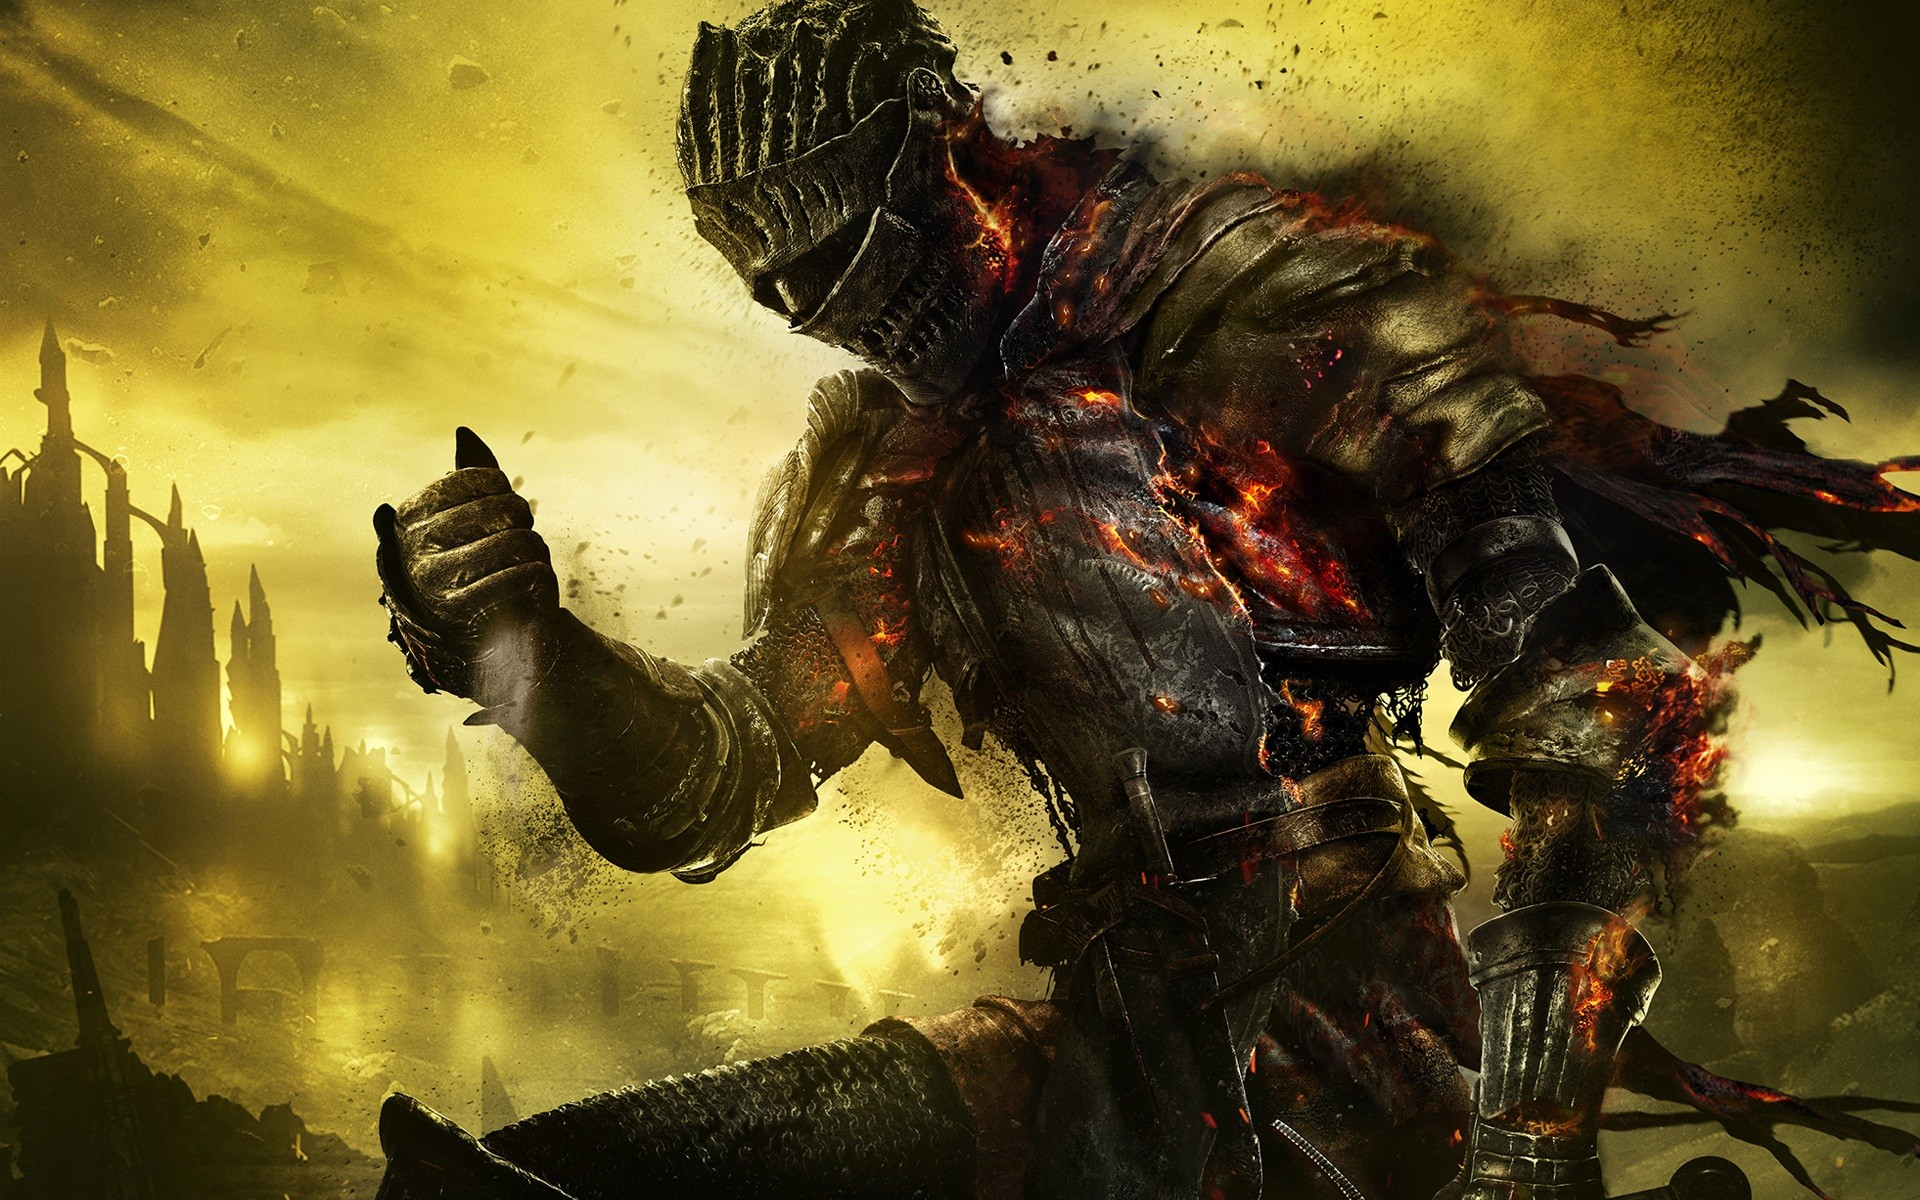 Dark Souls 3 Hd Wallpaper: Dark Souls 3 Wallpaper 1920x1080 (77+ Images